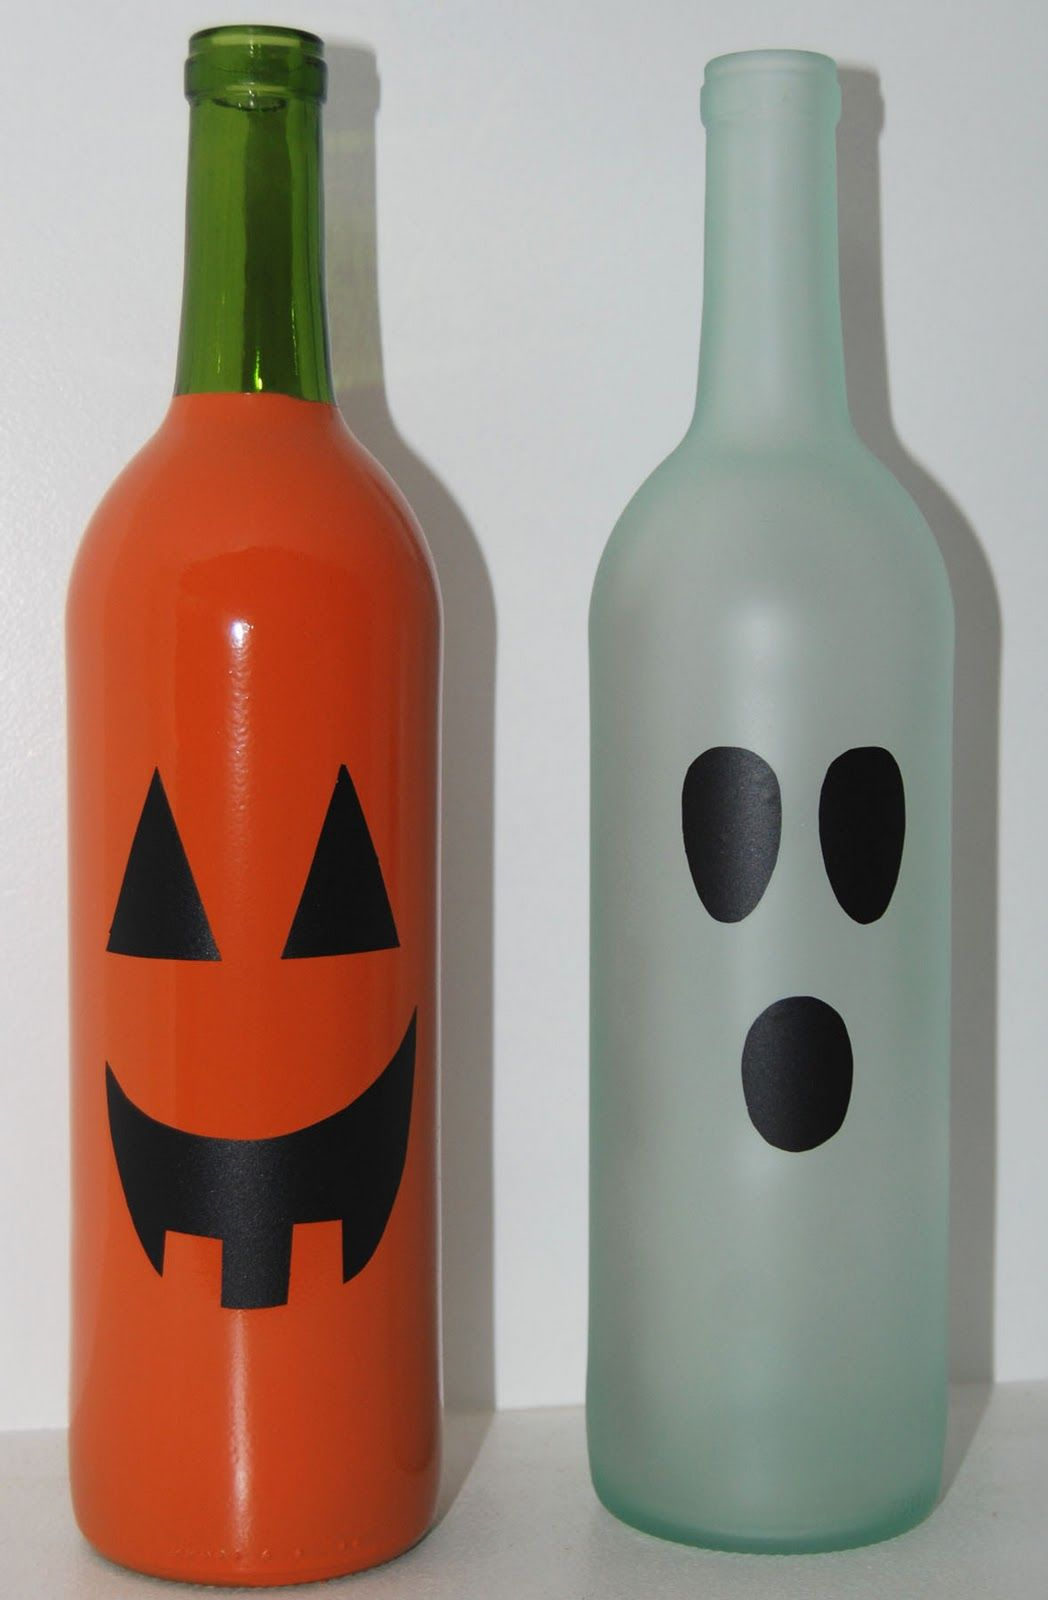 I M Not One For Halloween Decorations But I Have Enough Empty Wine Bottles To Do This Nap Time Craf Wine Bottle Crafts Halloween Crafts Halloween Decorations